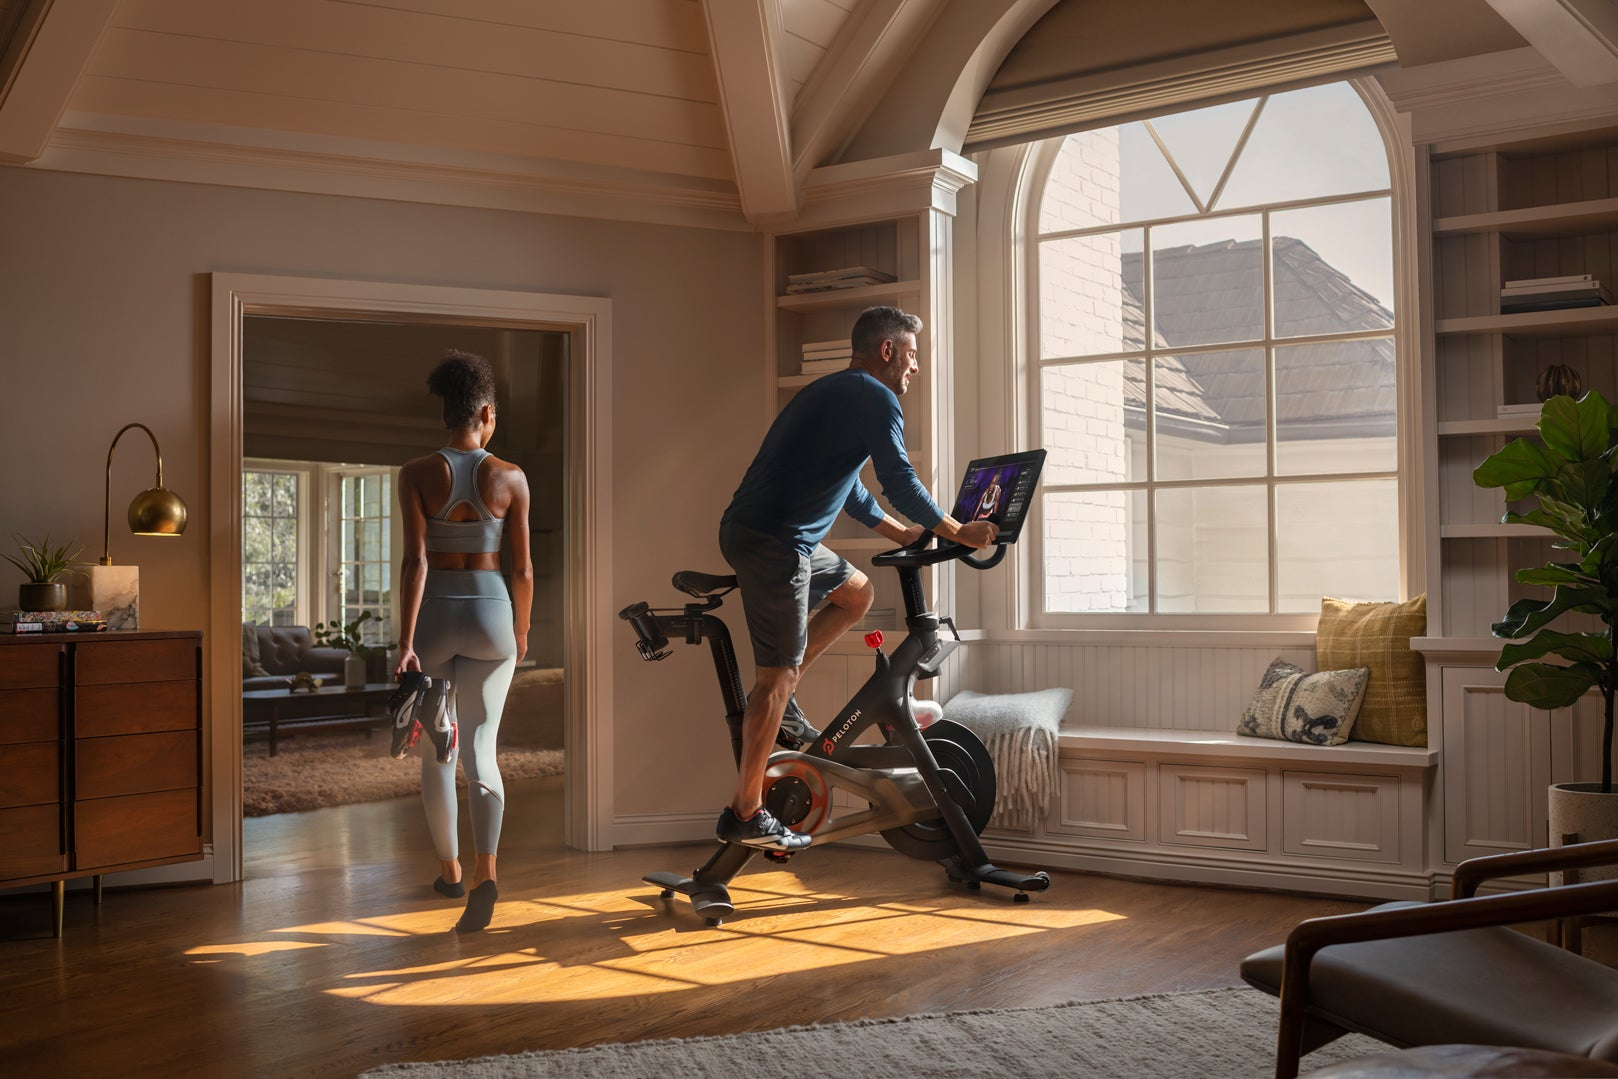 Why Peloton Stock Jumped on Thursday but Pulled Back After Market Close - Motley Fool